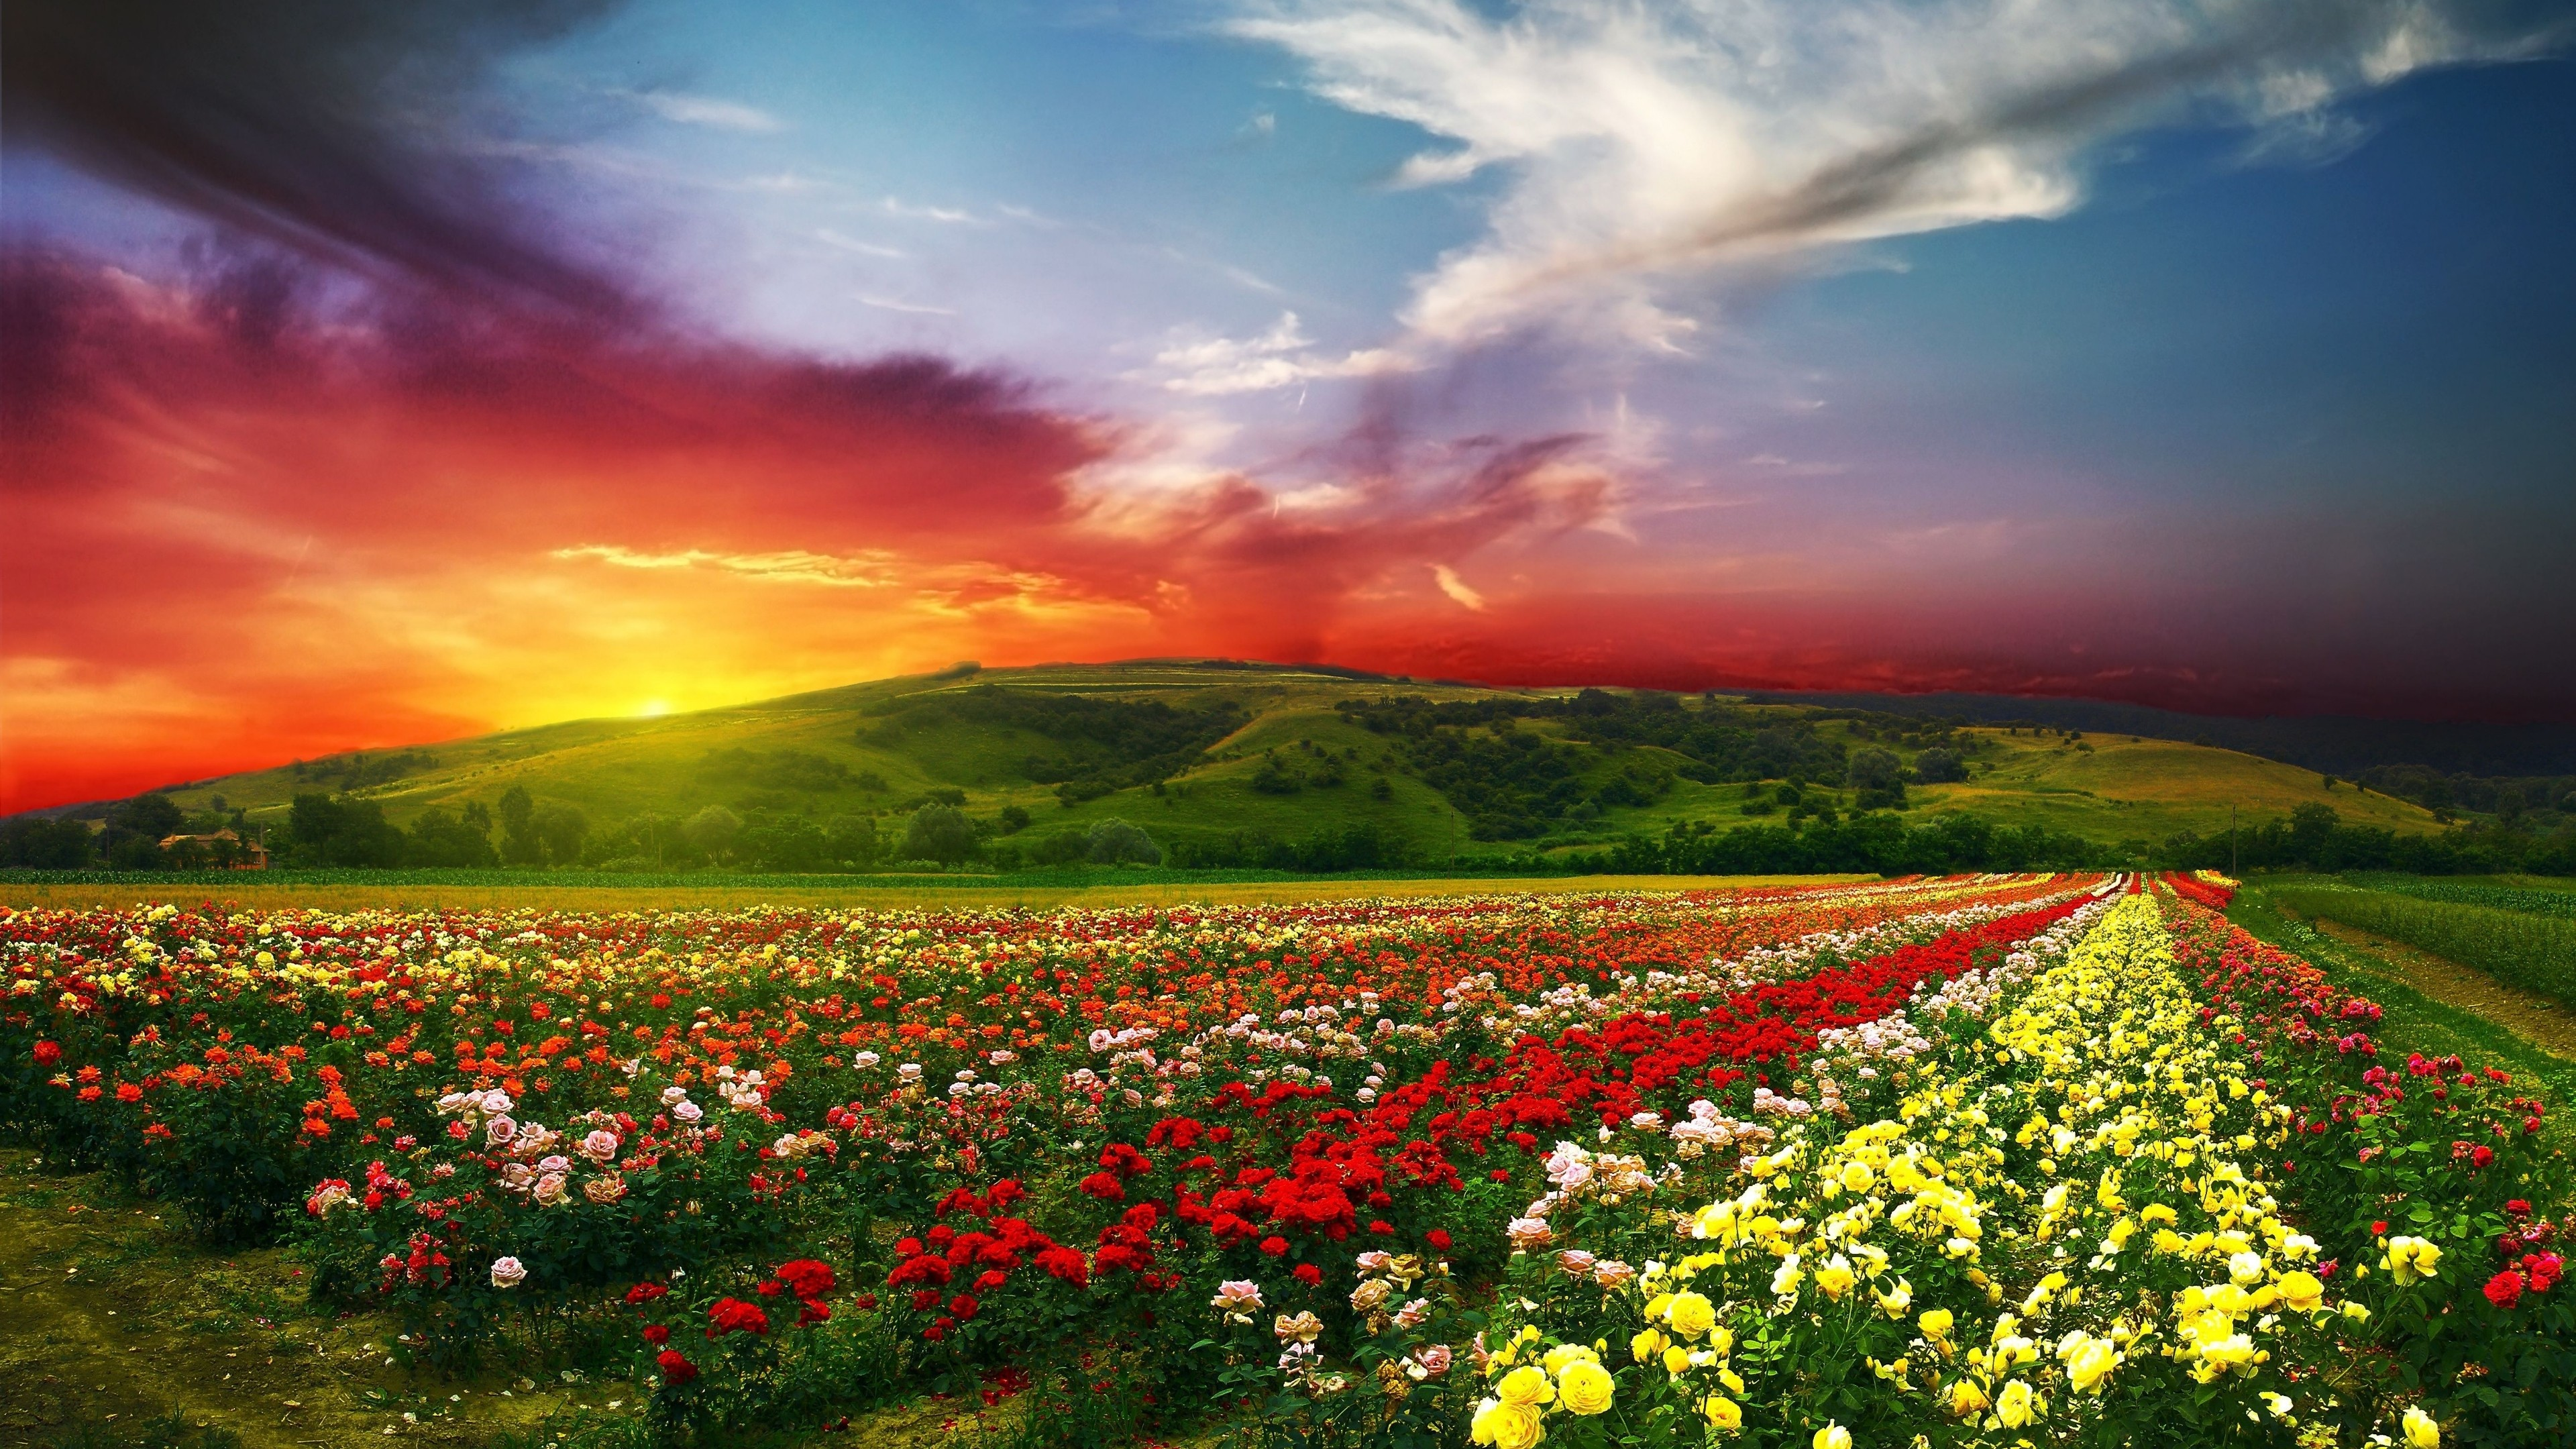 Download ultra hd 4k beautiful flowers with colorful clouds 877 liked like share izmirmasajfo